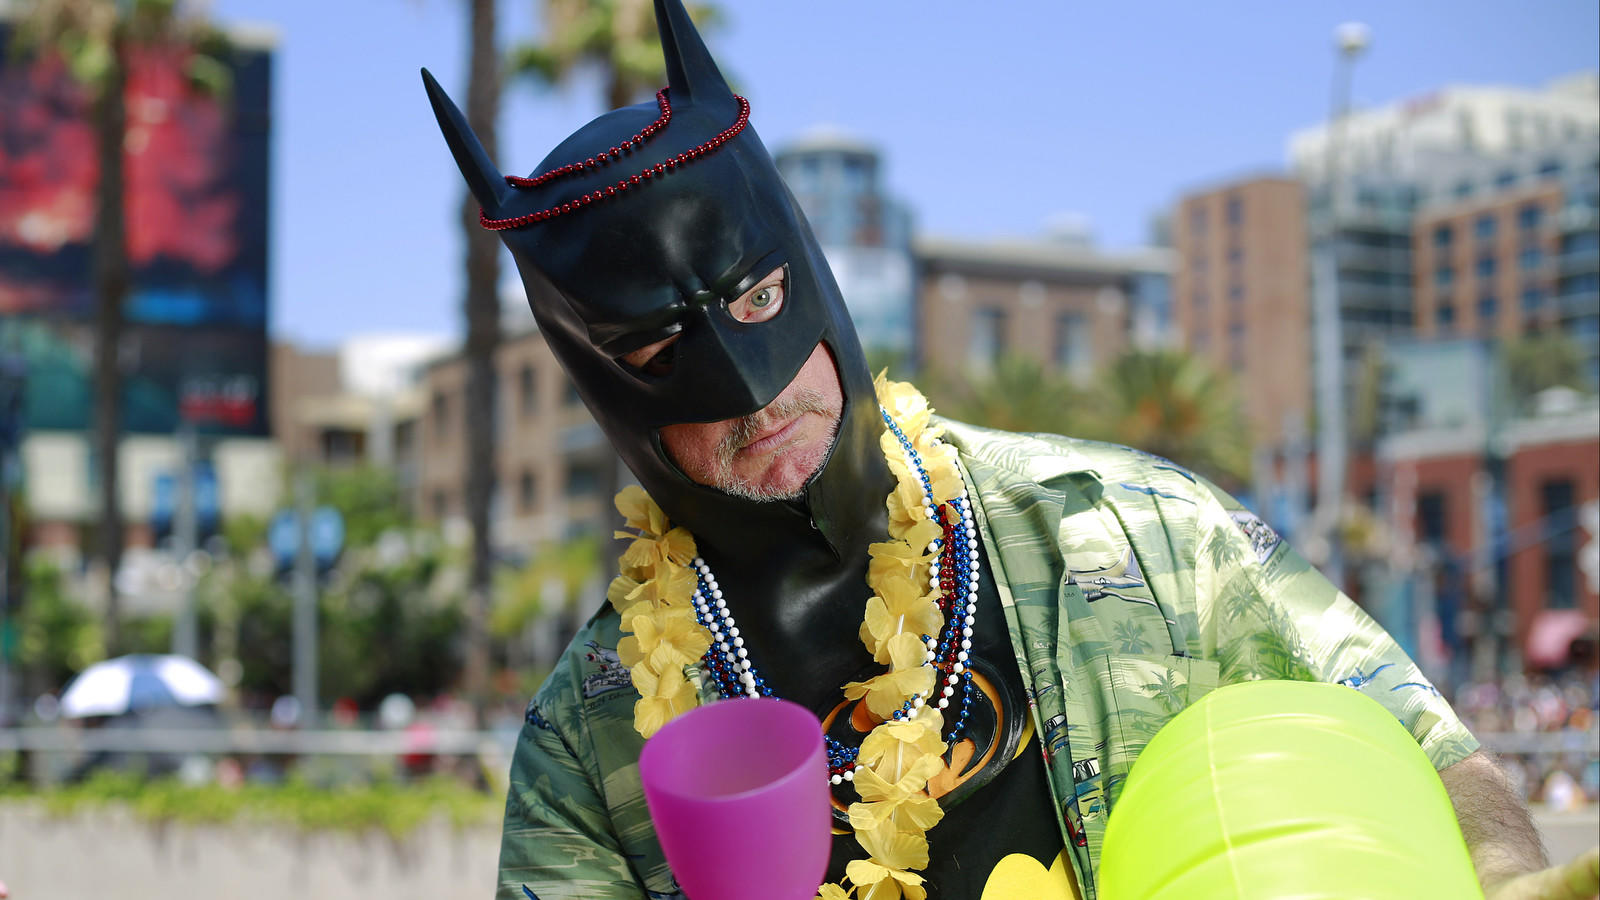 Steamroller Jim is a vacationing Batman at Comic-Con in San Diego. (K.C. Alfred / San Diego Union-Tribune)